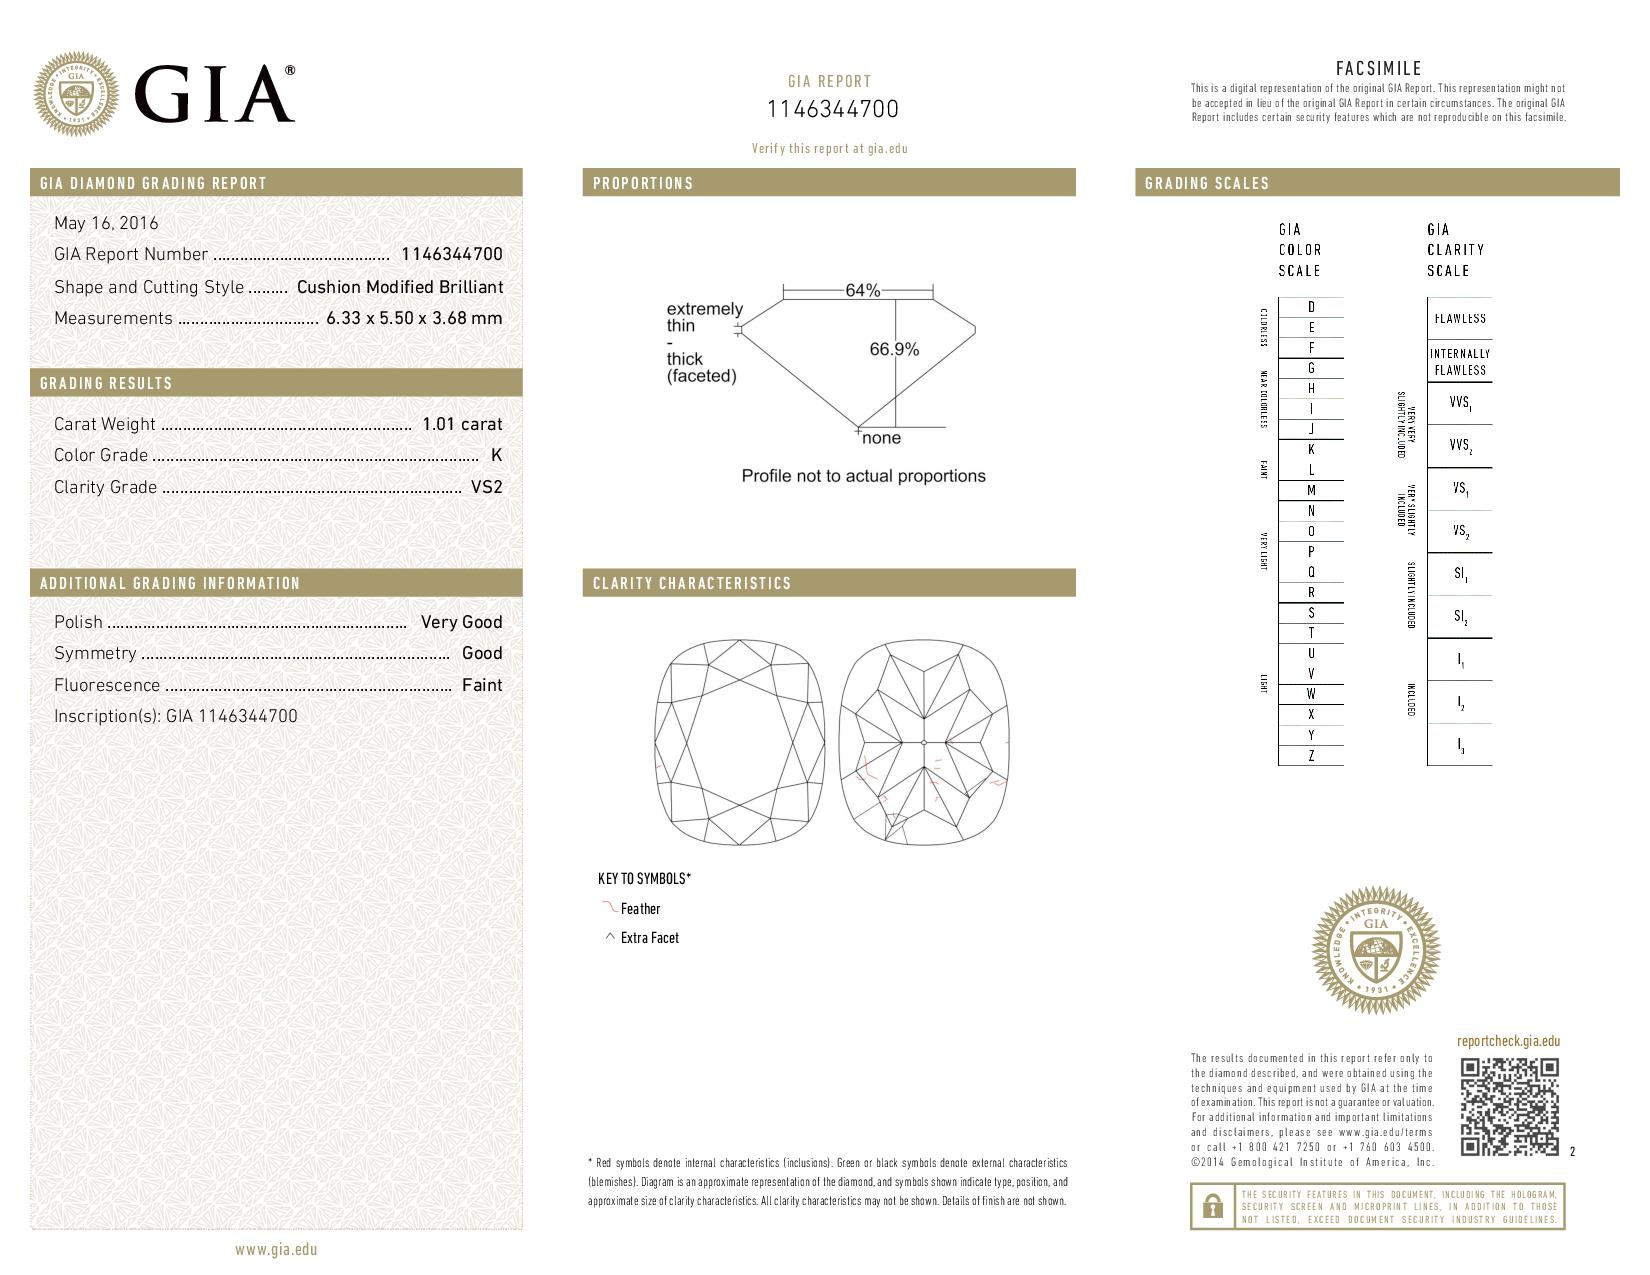 This is a 1.01 carat cushion shape, K color, VS2 clarity natural diamond accompanied by a GIA grading report.